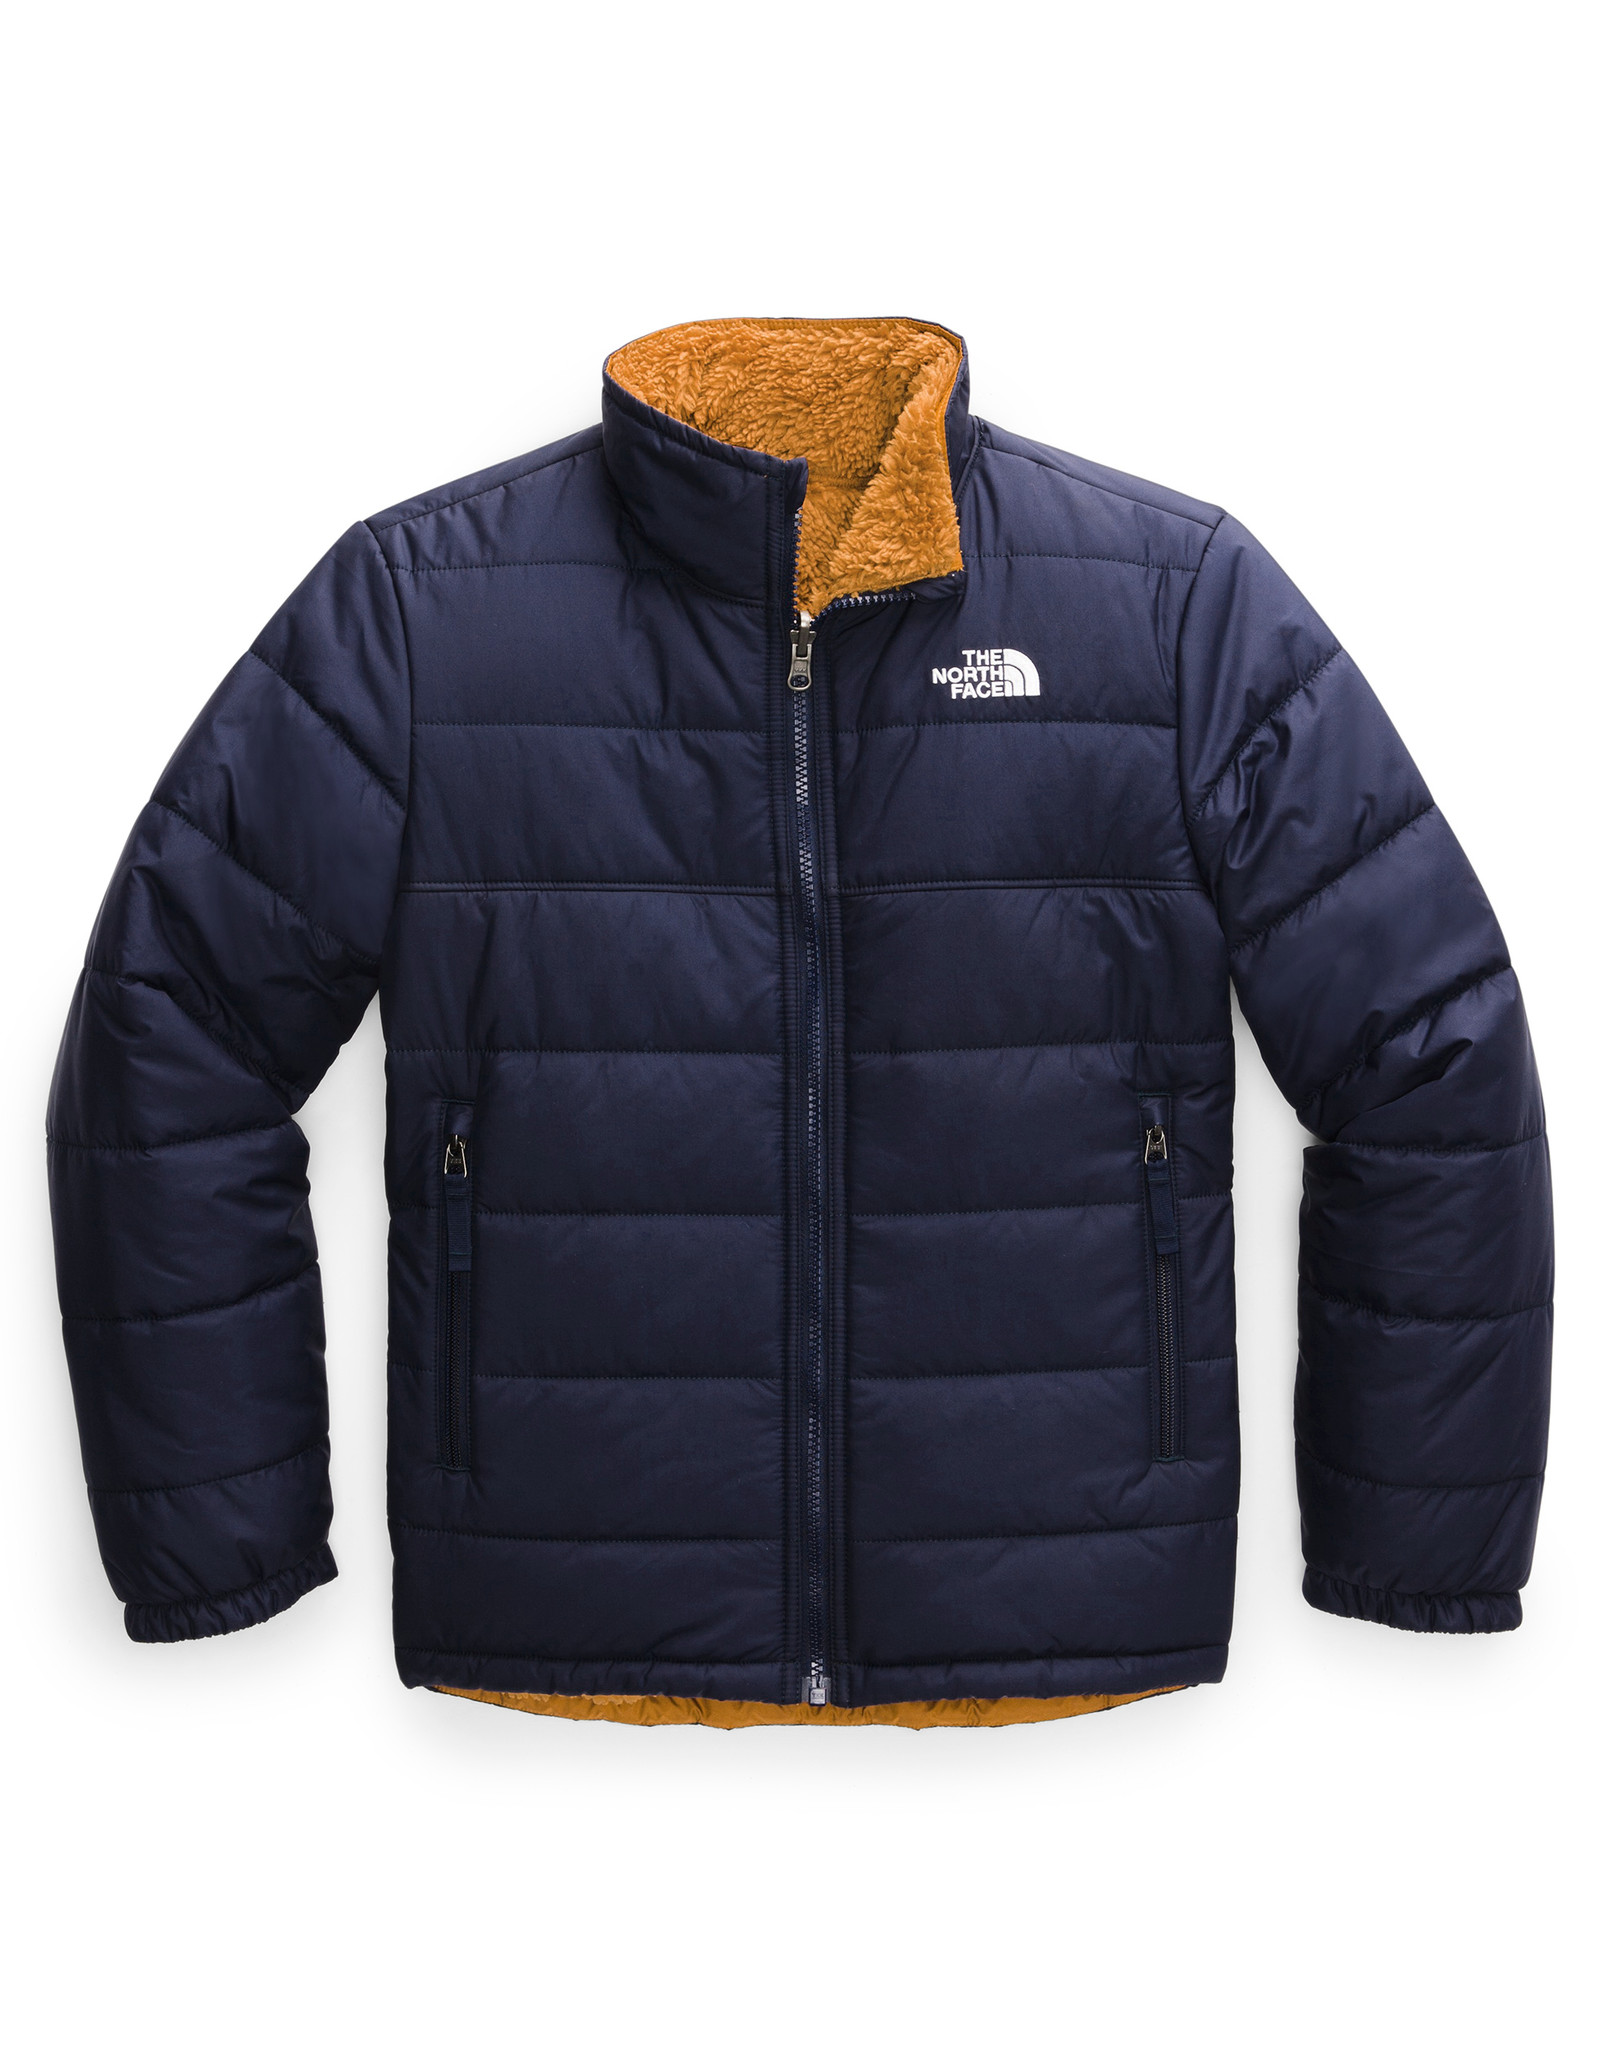 The North Face The North Face Boy's Reversible Mount Chimborazo Jacket -W2020